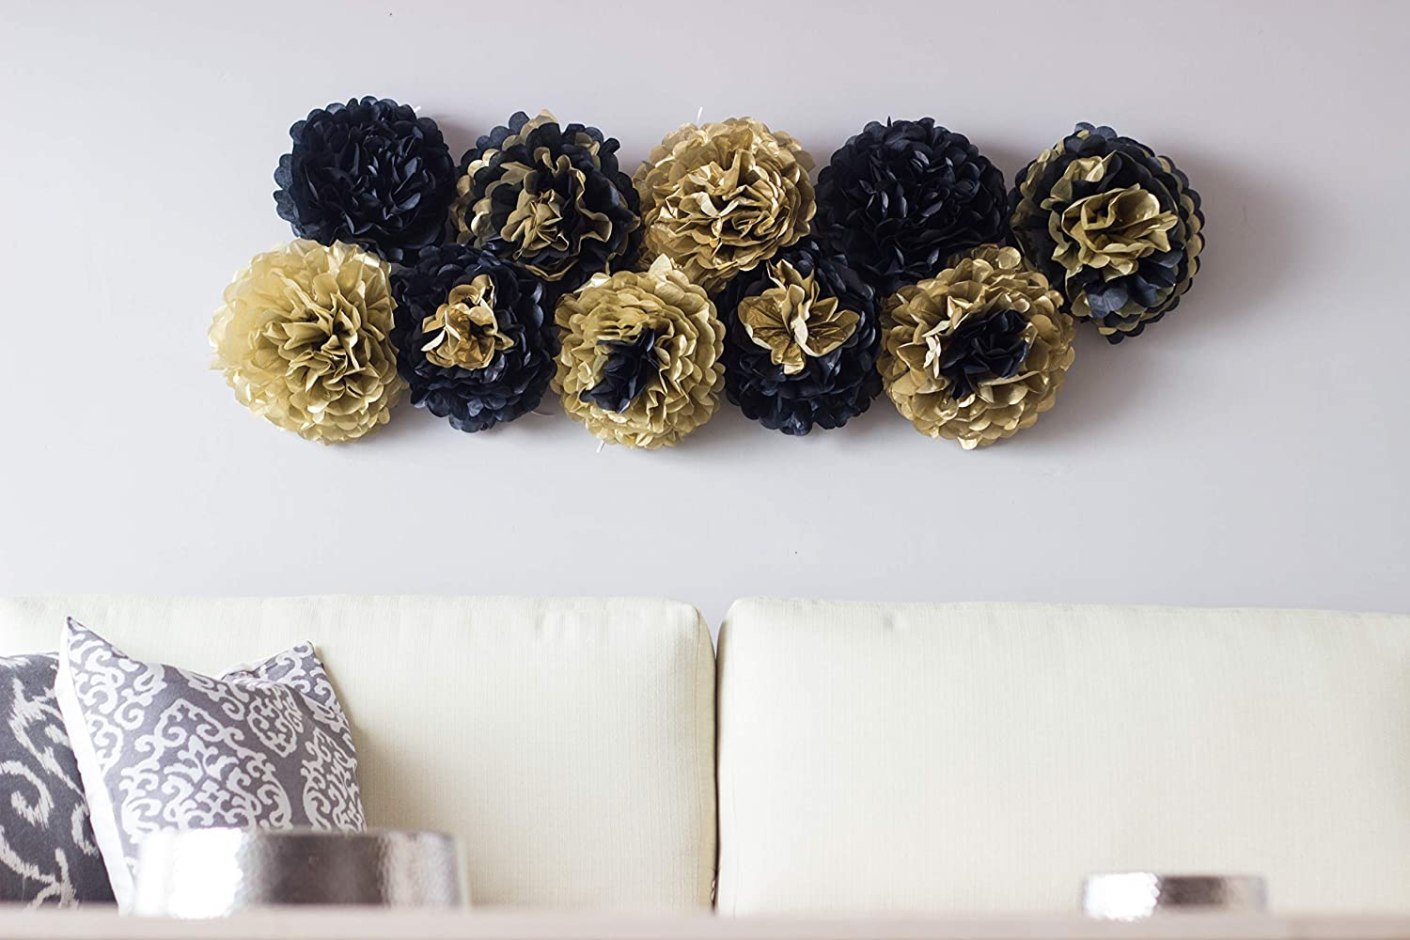 Decoracion para fiesta dorada y negro https://amzn.to/2EcISTm